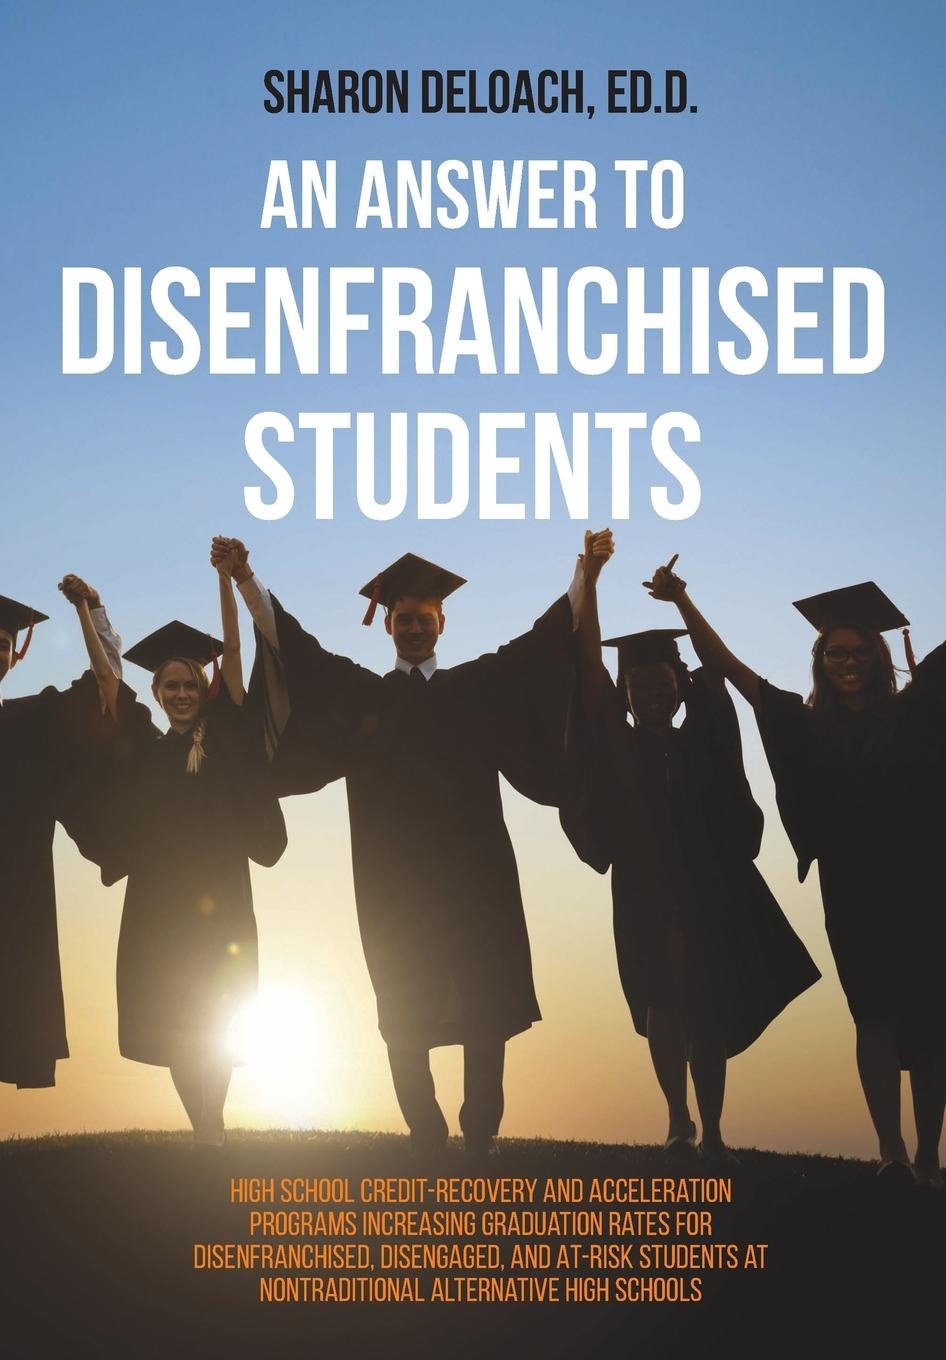 цена на Sharon D. Jones Deloach An Answer to Disenfranchised Students. High School Credit-Recovery and Acceleration Programs Increasing Graduation Rates for Disenfranchised, Disengaged, and At-risk Students at Nontraditional Alternative High Schools